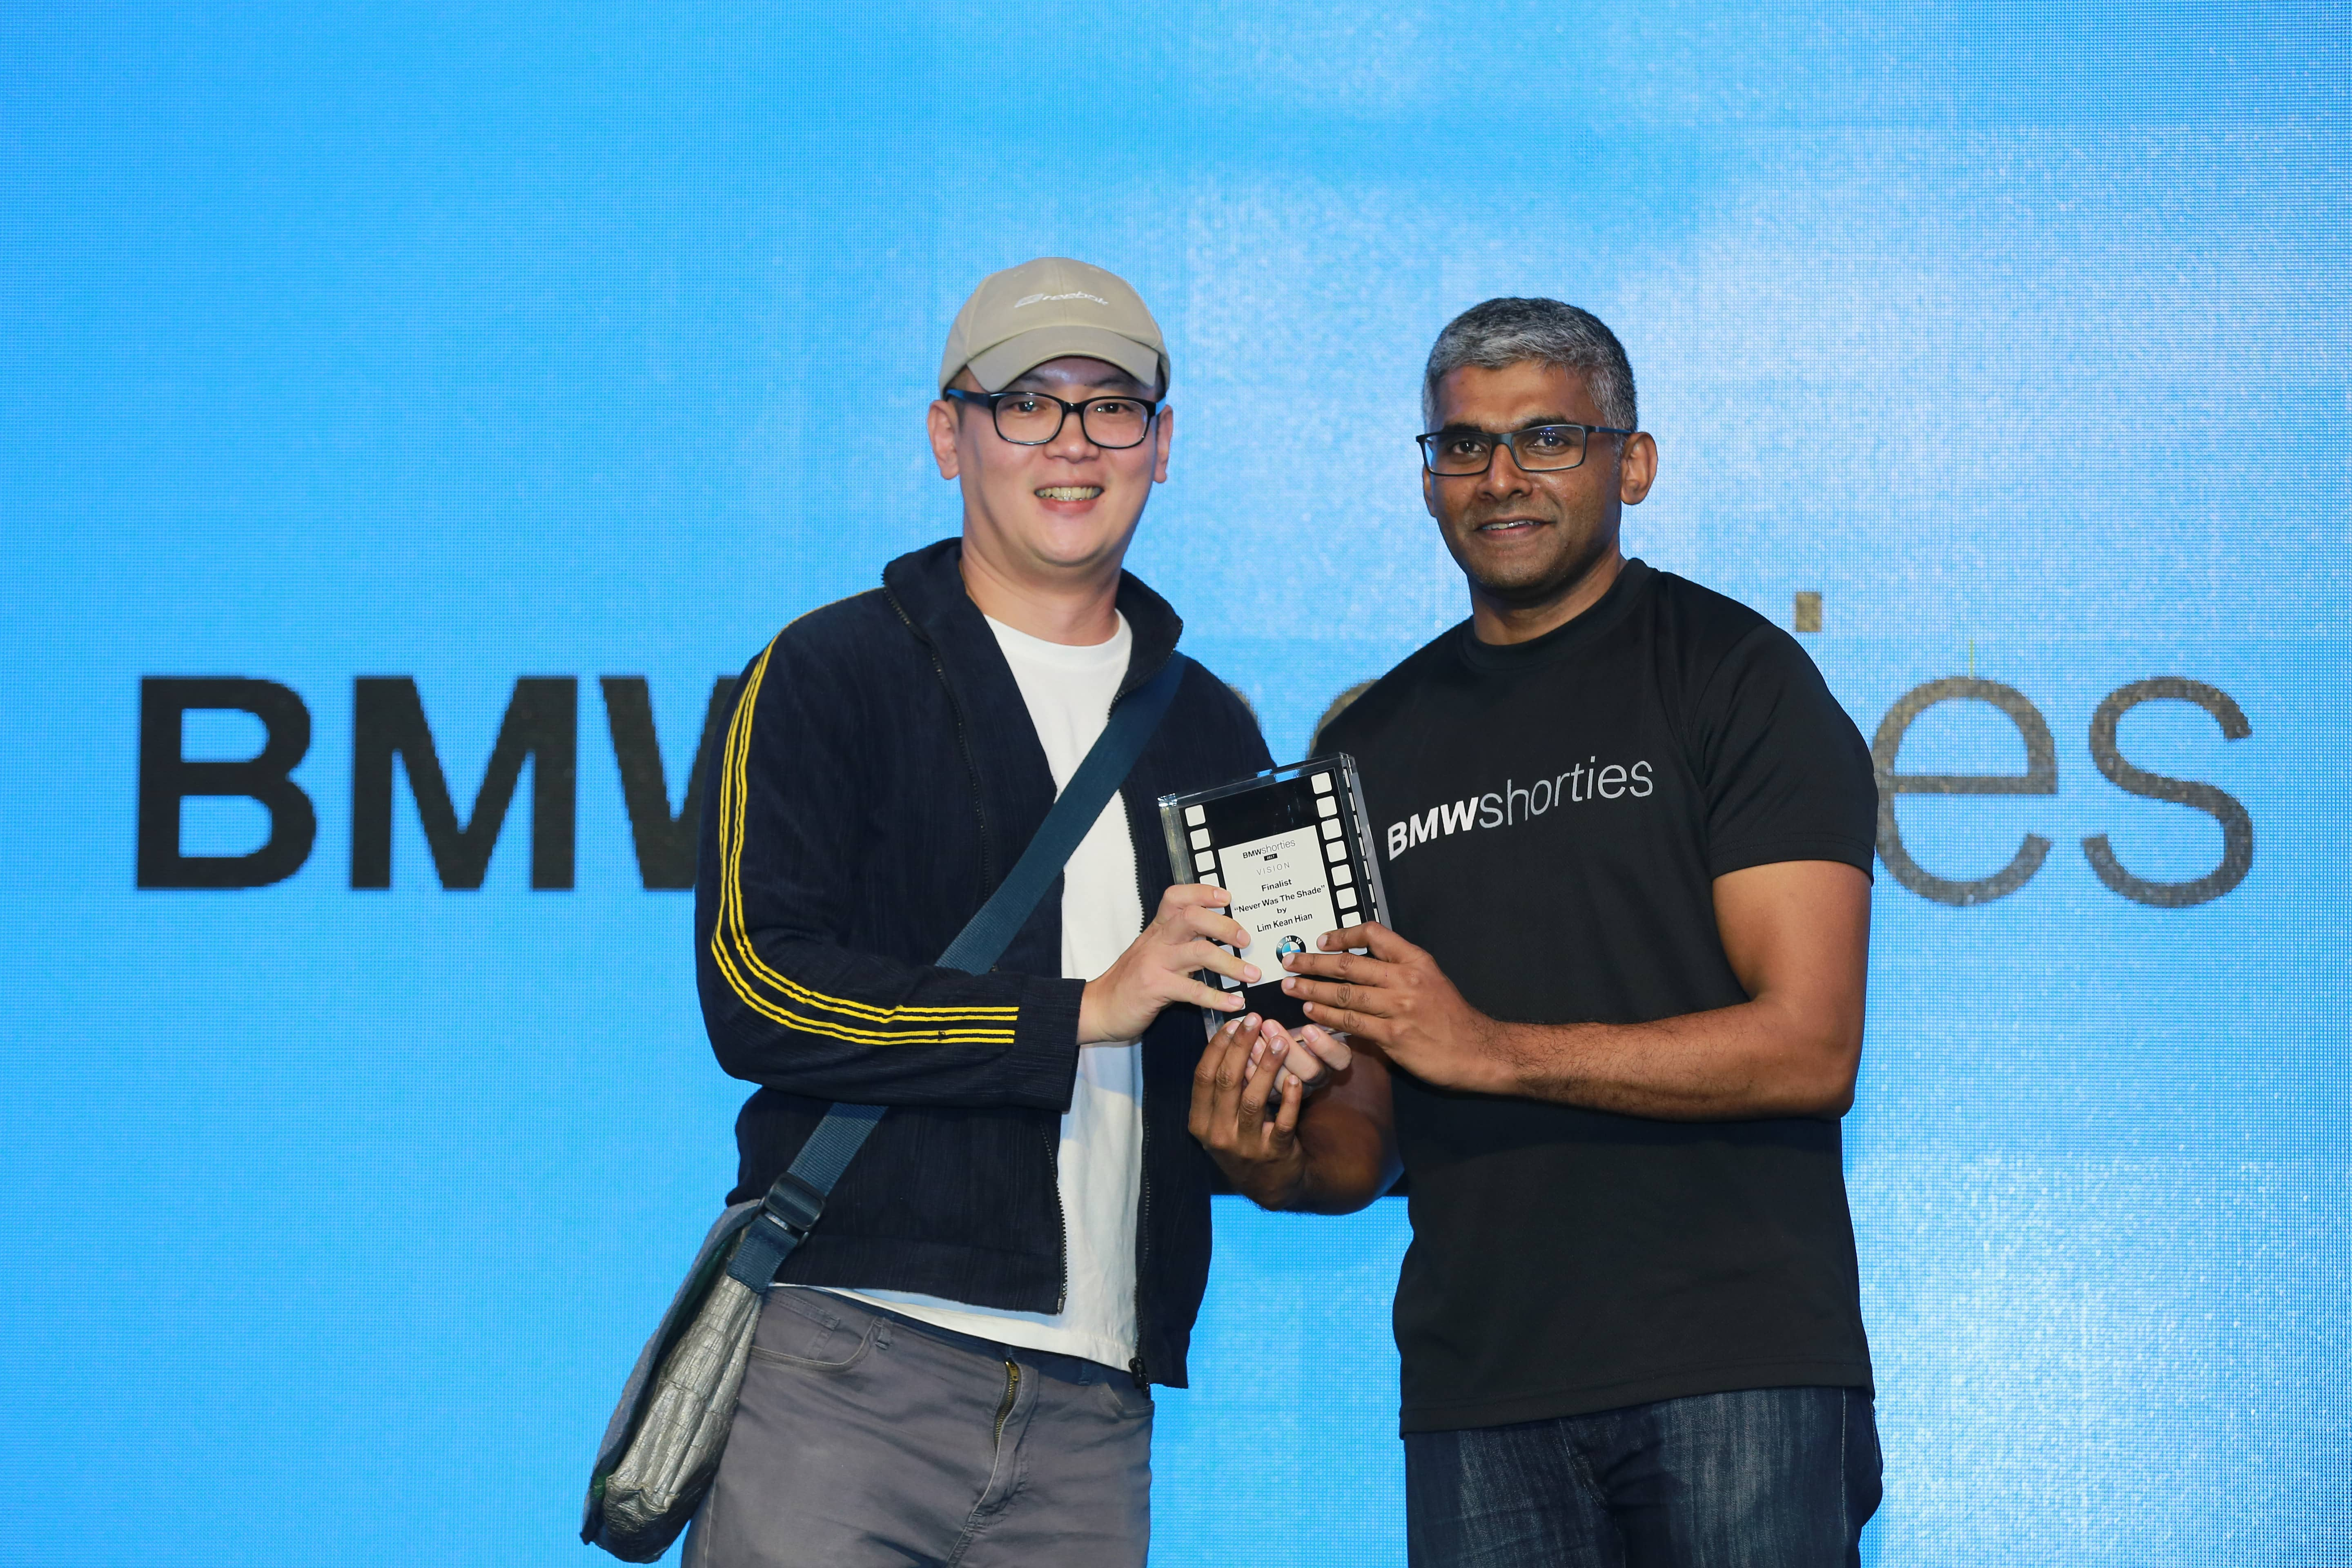 Director of 'Never Was The Shade', Lim Kean Hian, accepting his award for the best short film. Image from BMW Shorties